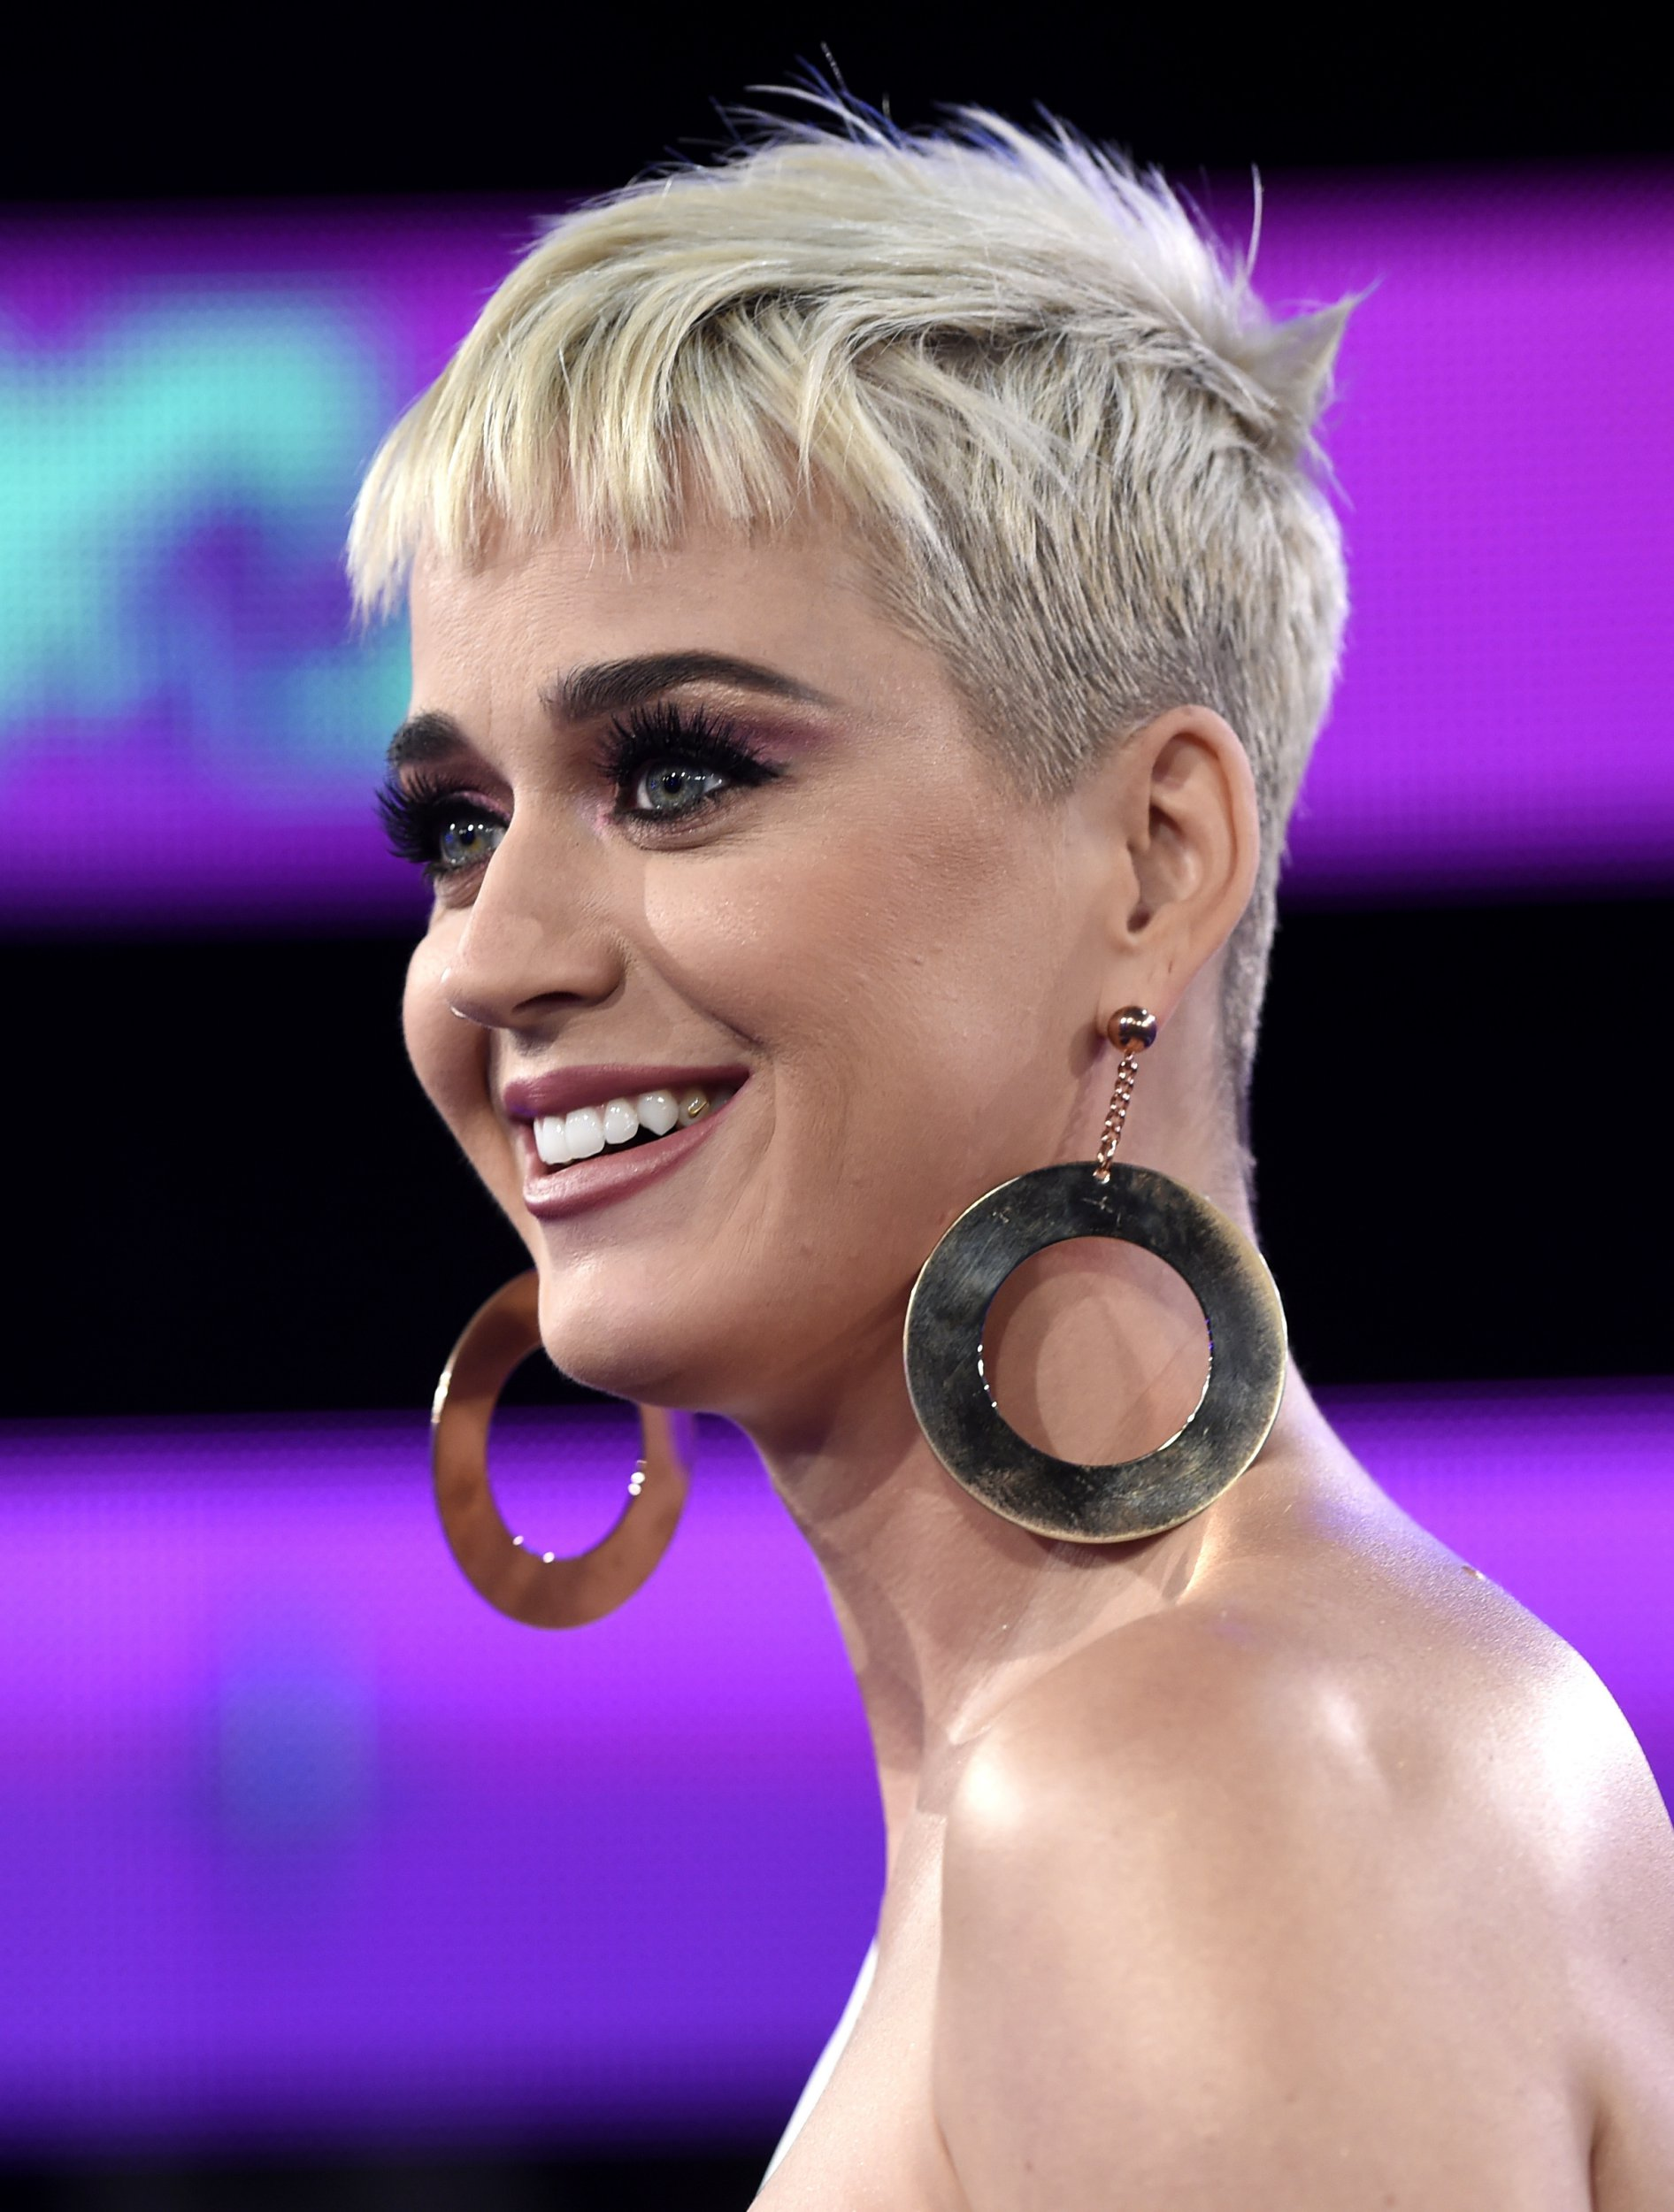 Who is katy perry hookup march 2020